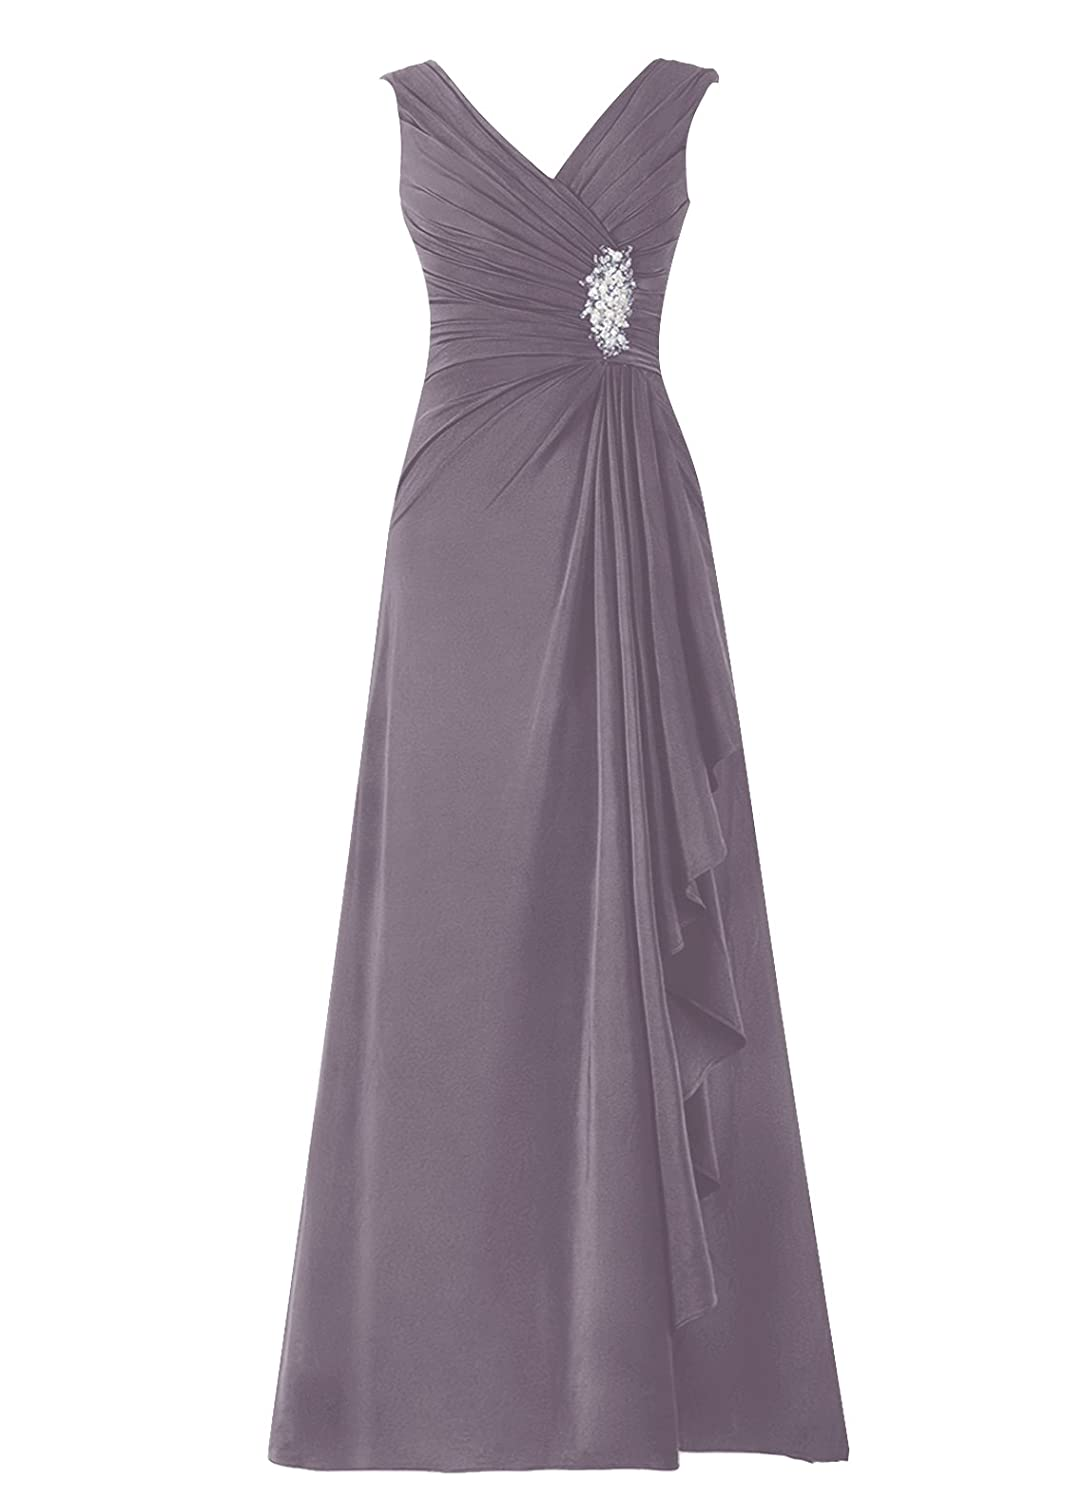 Dresstells® Long Chiffon V-neck Bridesmaid Gown Homecoming Party Dress DTZ053